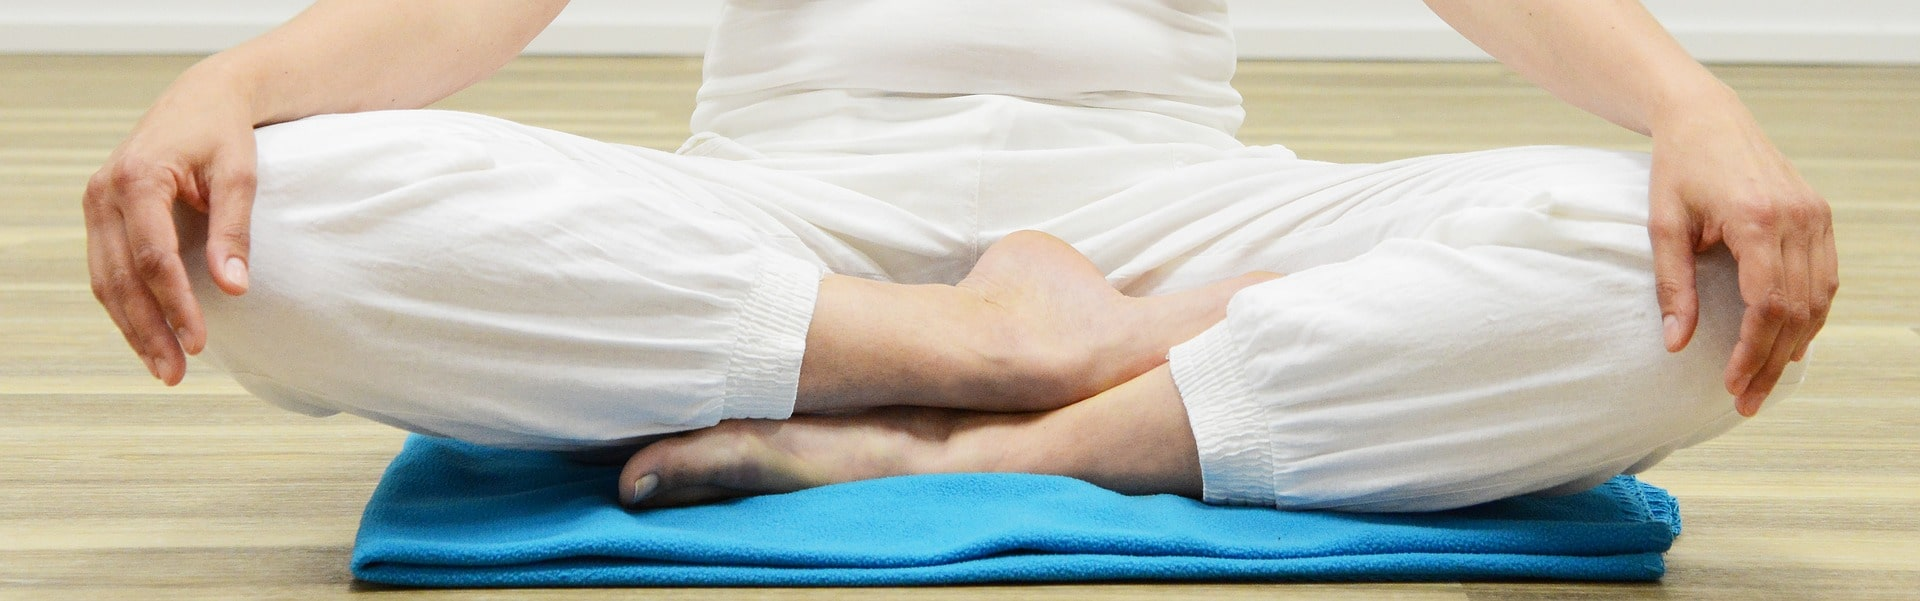 meditation-sit-on-blanket-white-pans-with-hands-on-knees.jpg